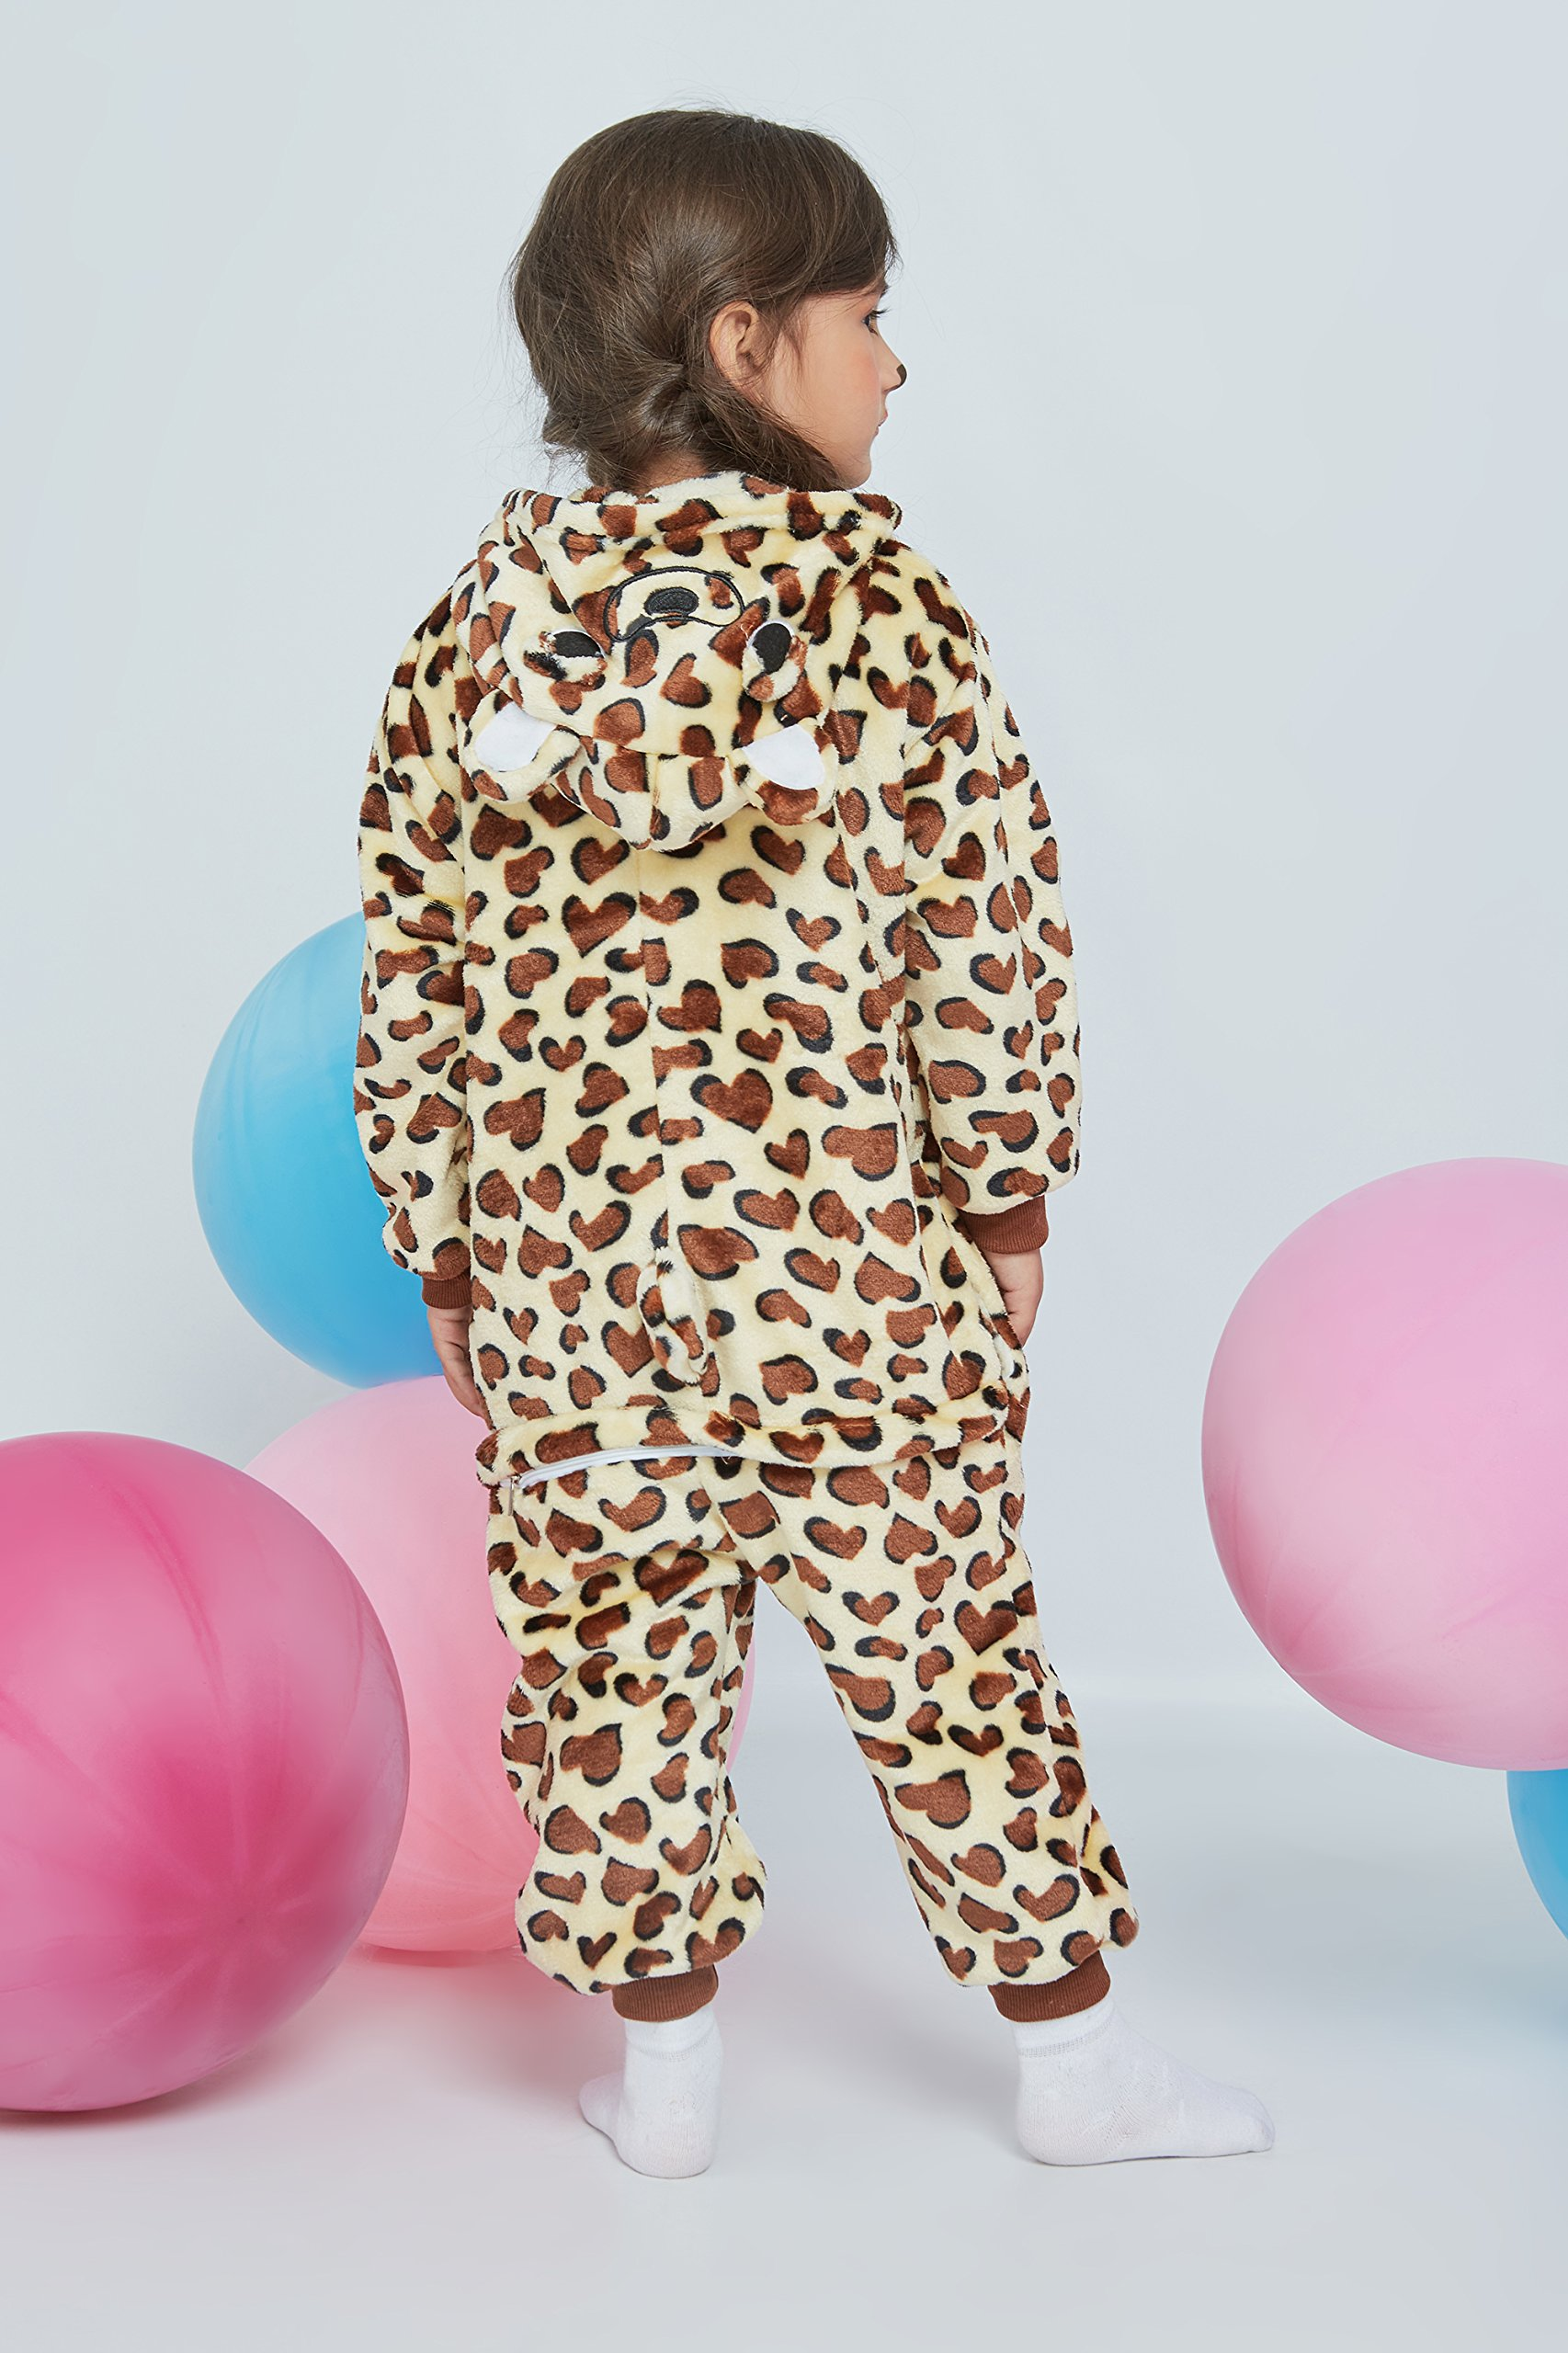 Kids Leopard Kigurumi Animal Onesie Pajamas Plush Onsie One Piece Cosplay Costume (Yellow, Brown, White) by Nothing But Love (Image #6)